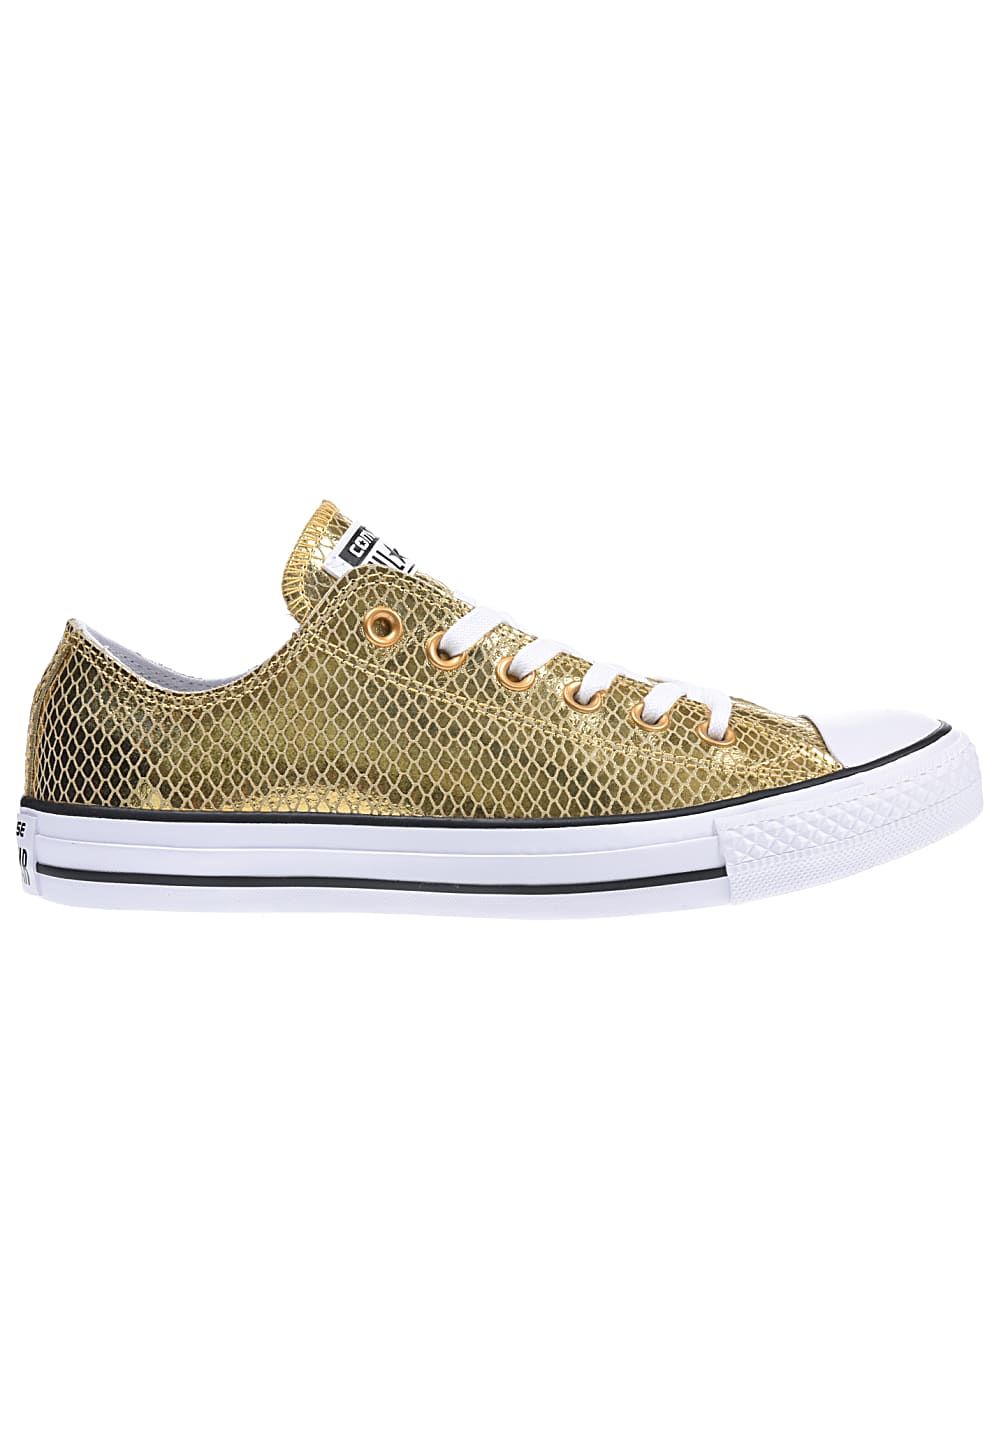 Converse Chuck Taylor All Star Ox Sneaker für Damen Gold